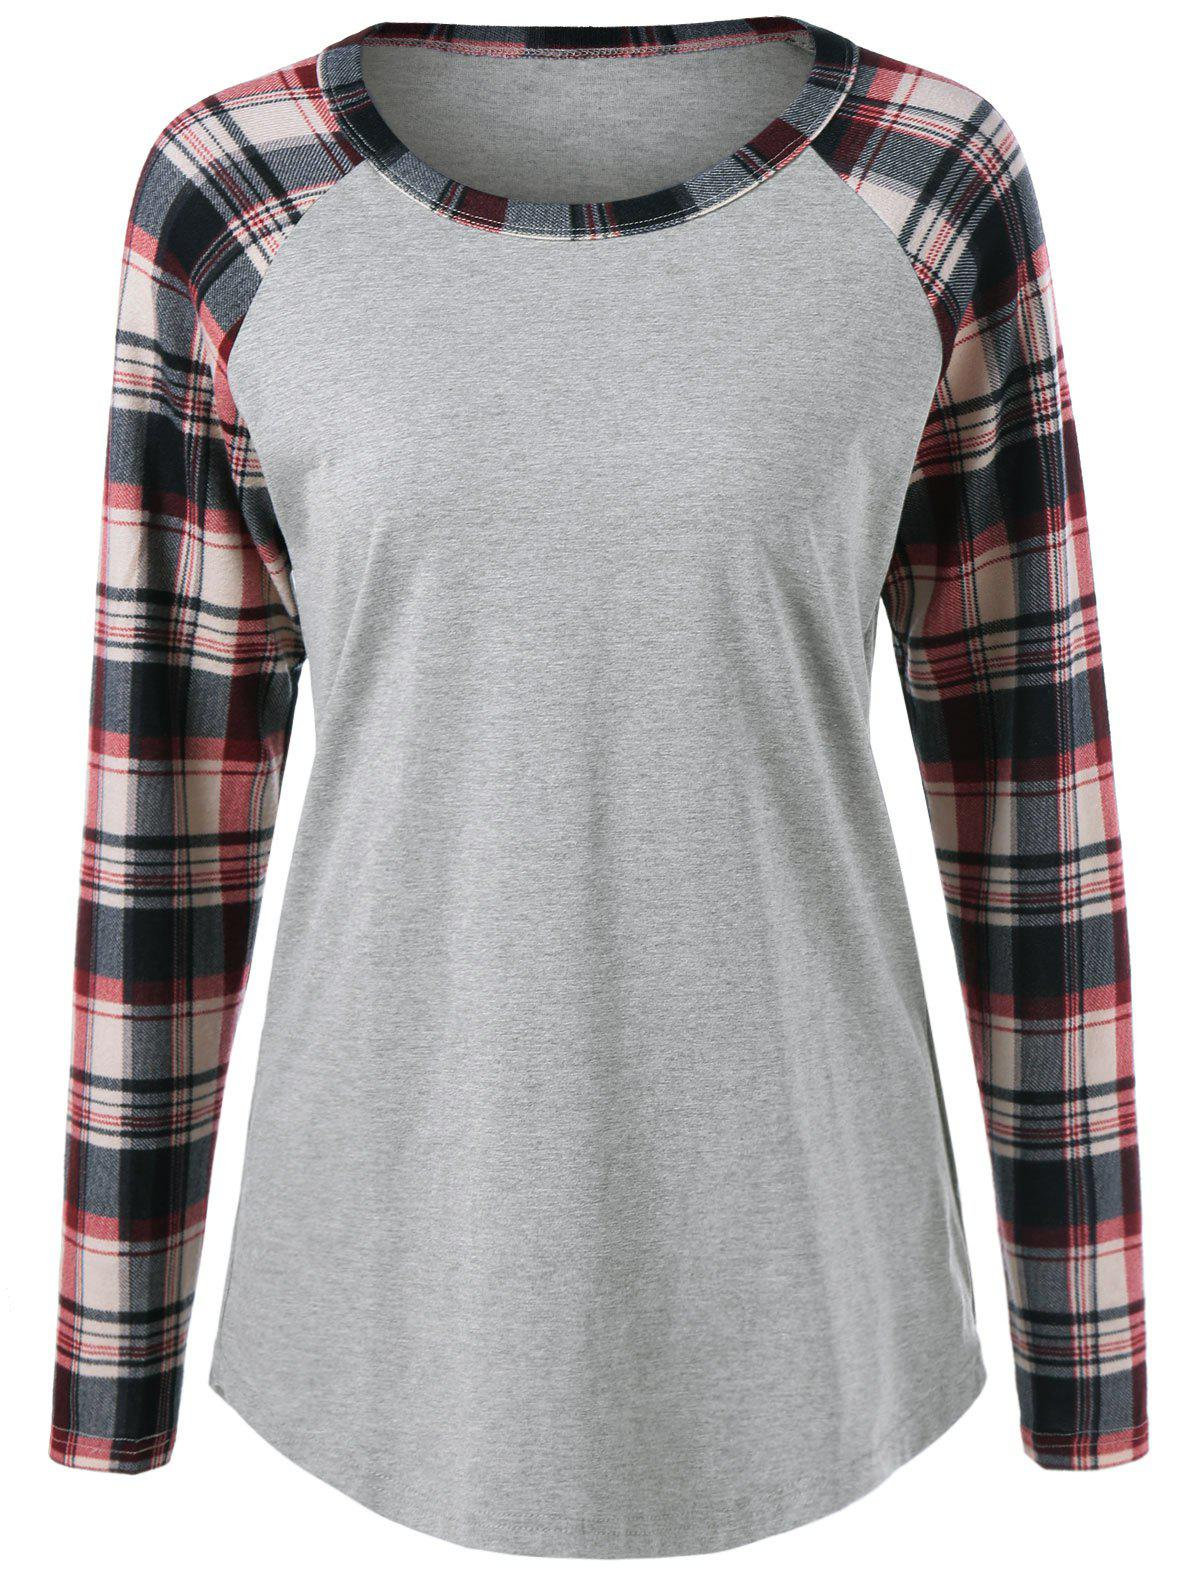 Plaid Trim Raglan Sleeve Tee